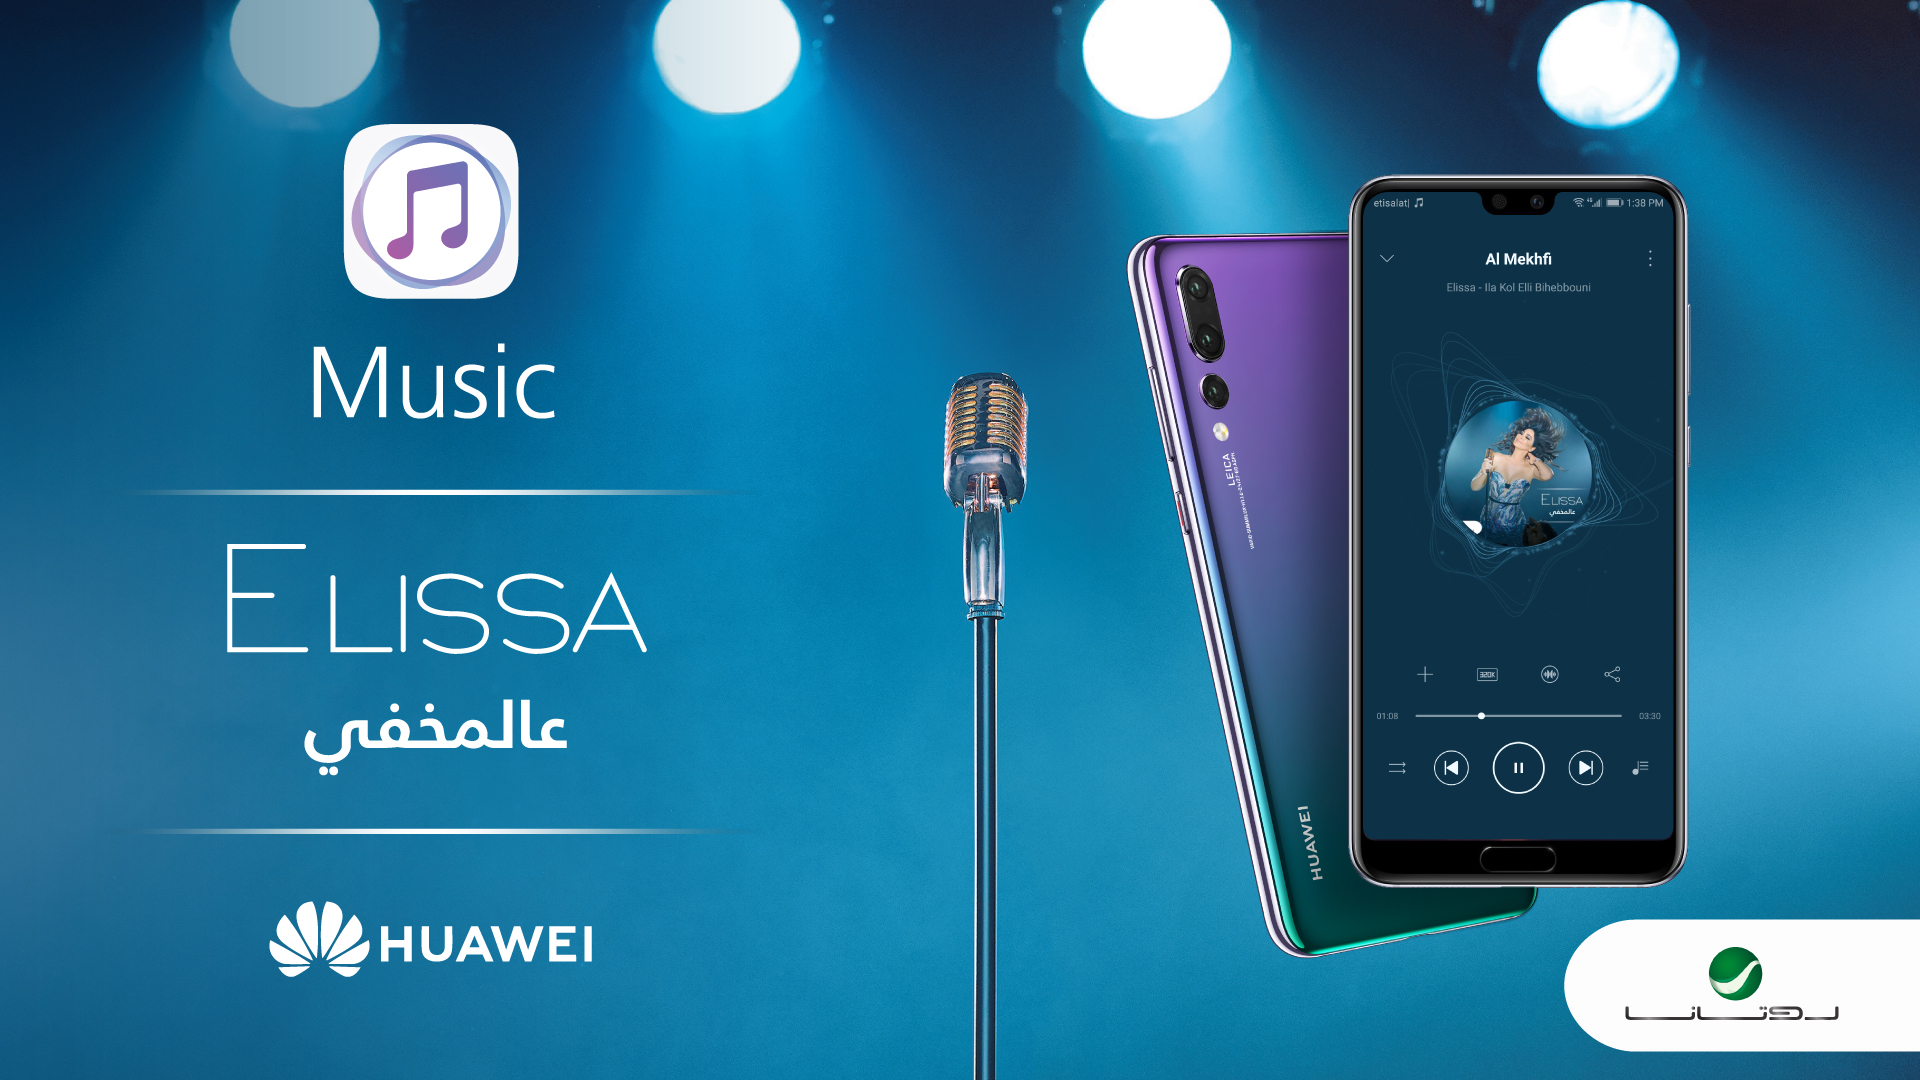 Huawei launches music streaming service in Middle East | TechRadar